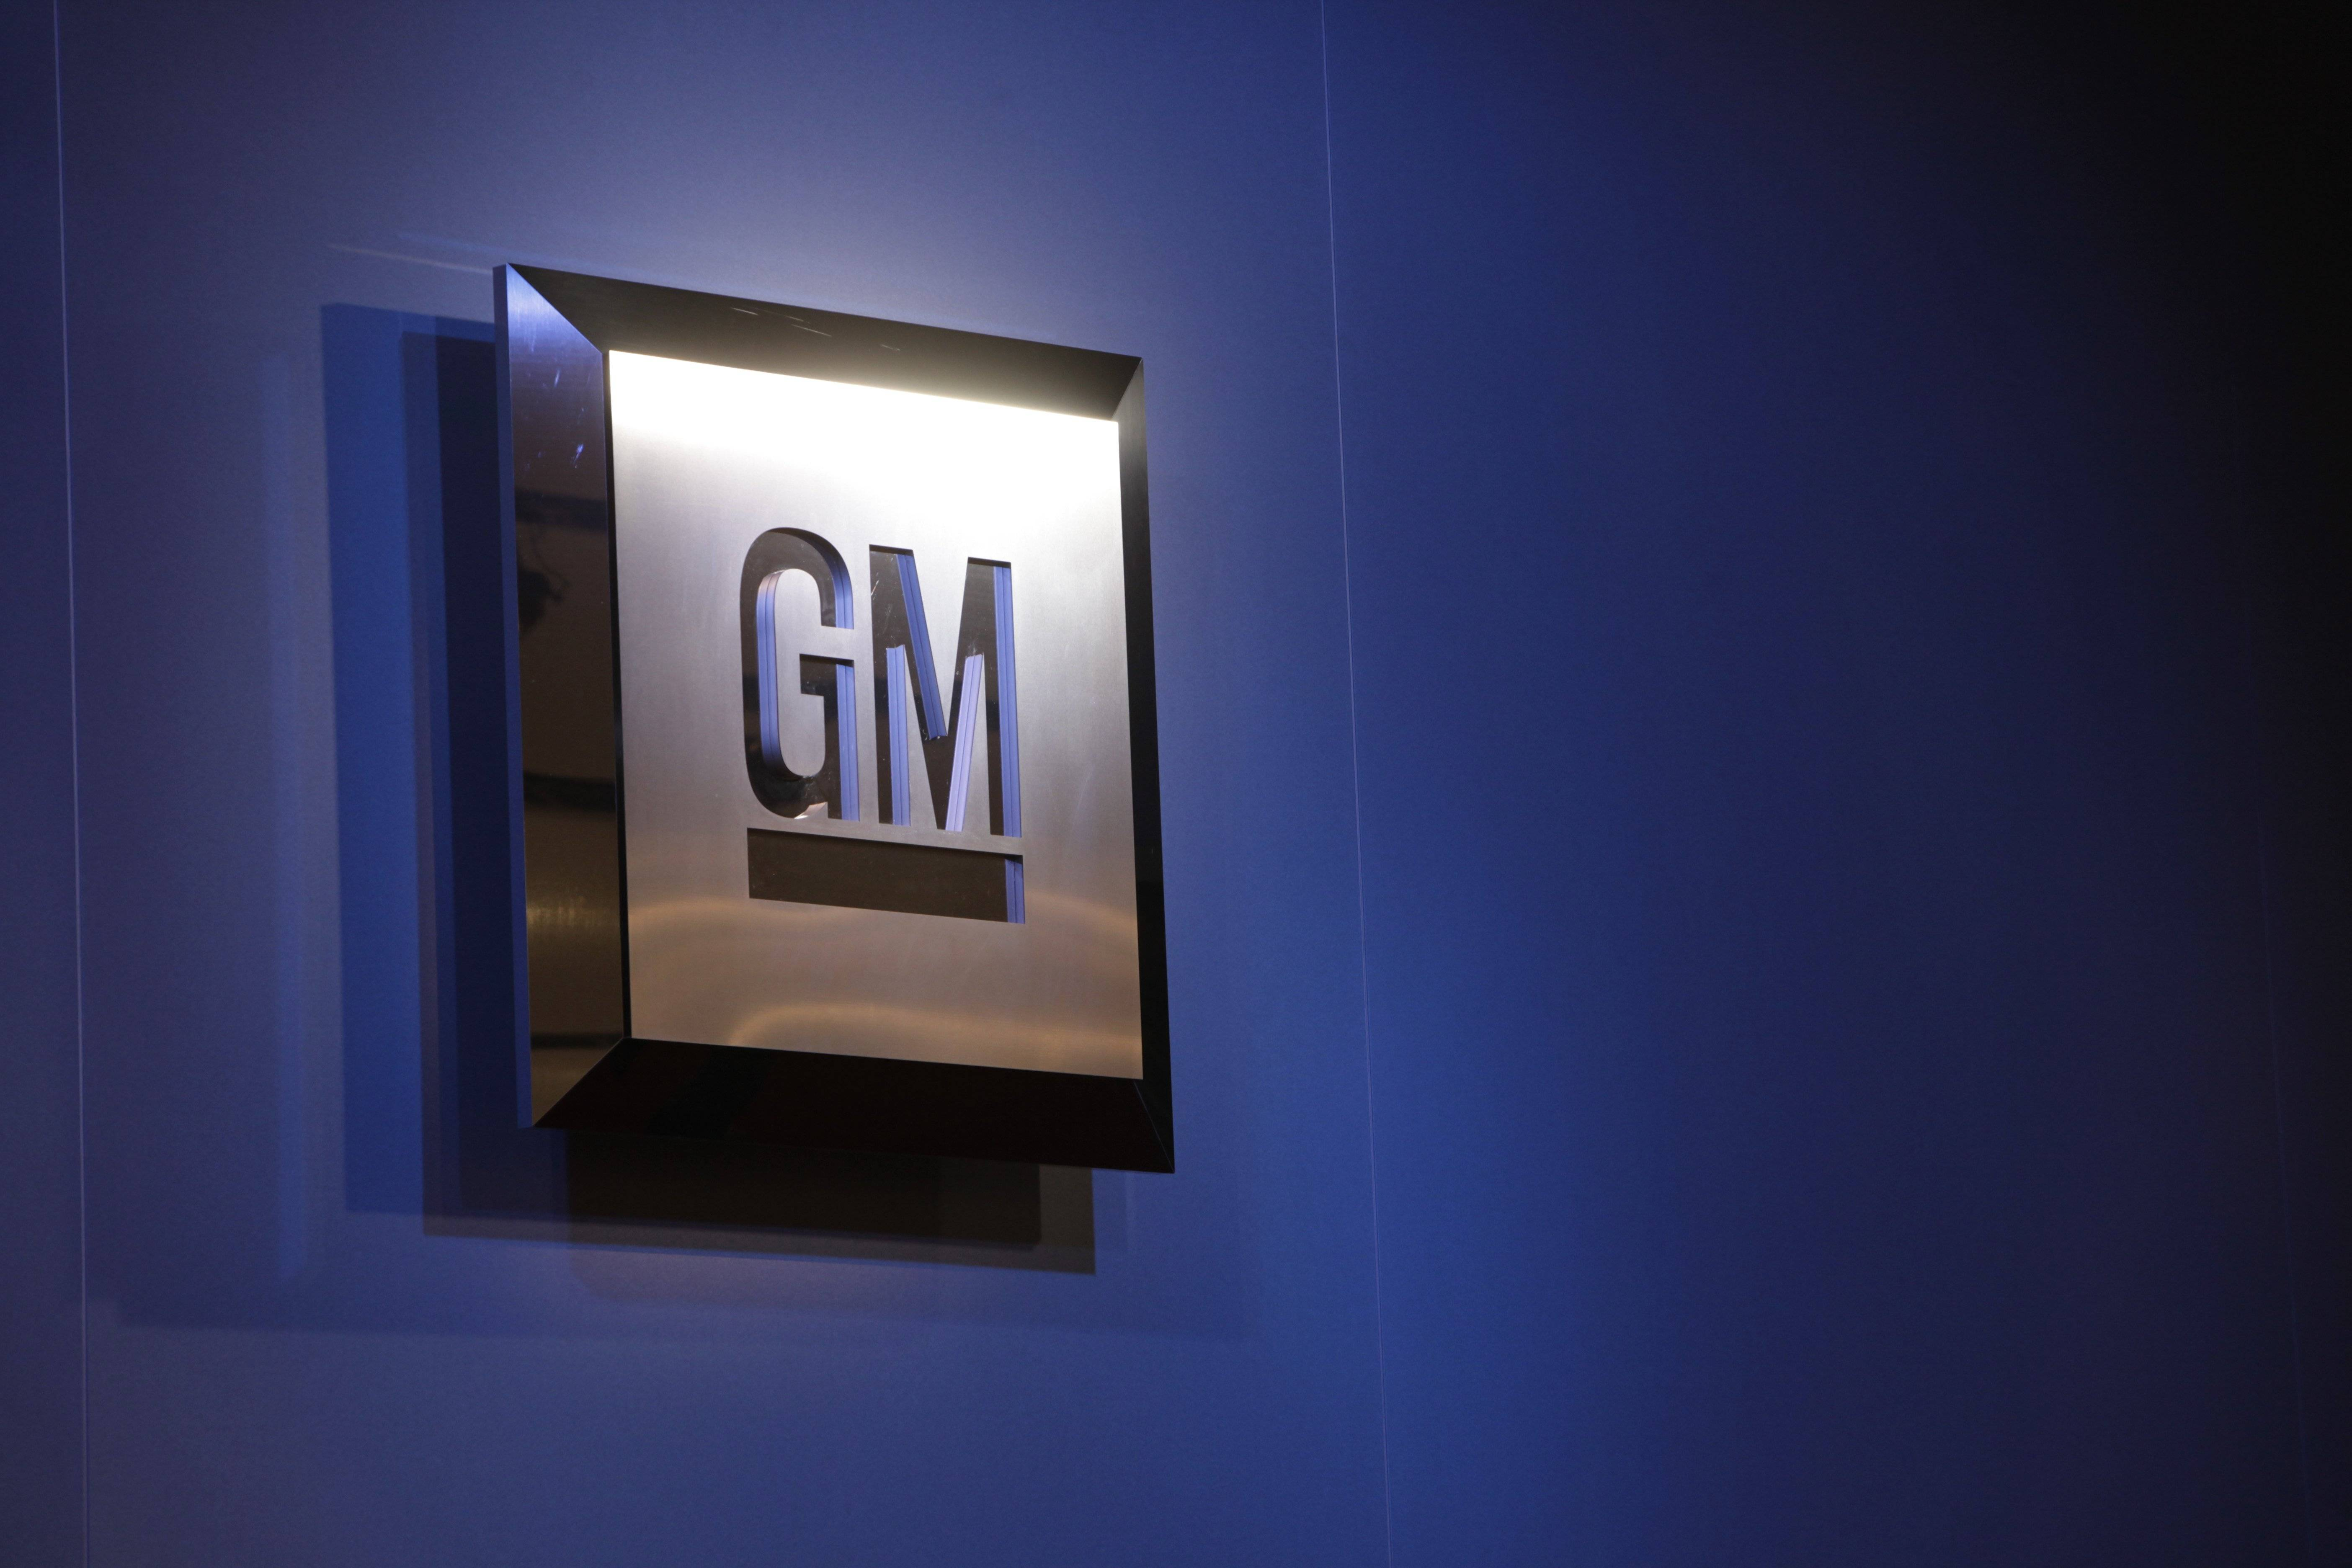 A government safety agency is fining General Motors $7,000 a day, saying the company failed to fully respond to its requests for information about a faulty ignition switch by an April 3 deadline.